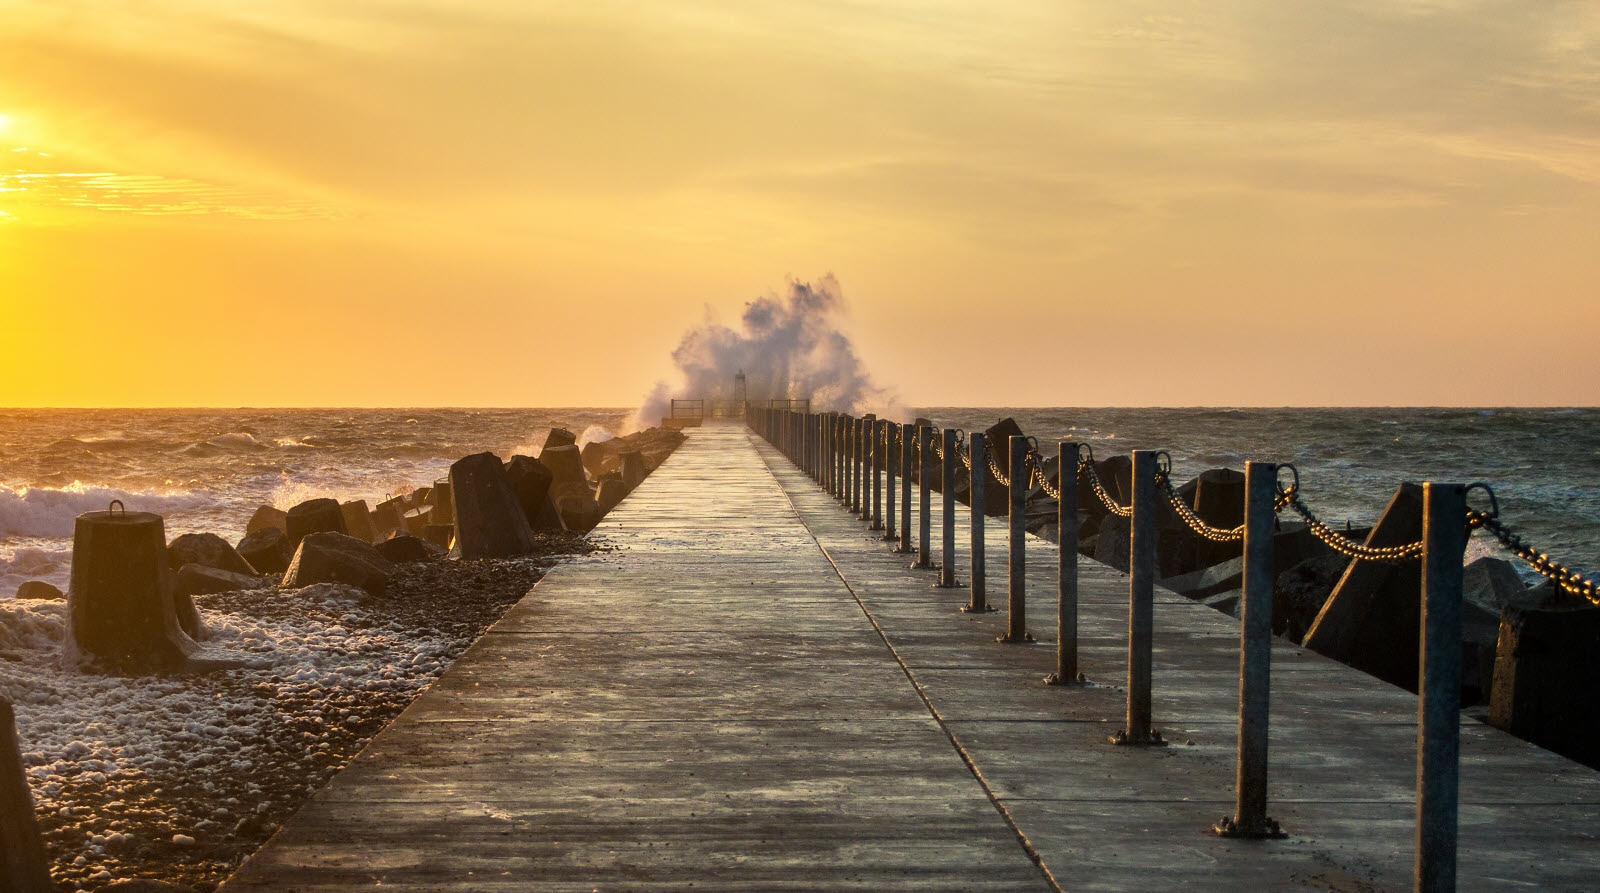 Waves over the pier, Jutland, in sunset